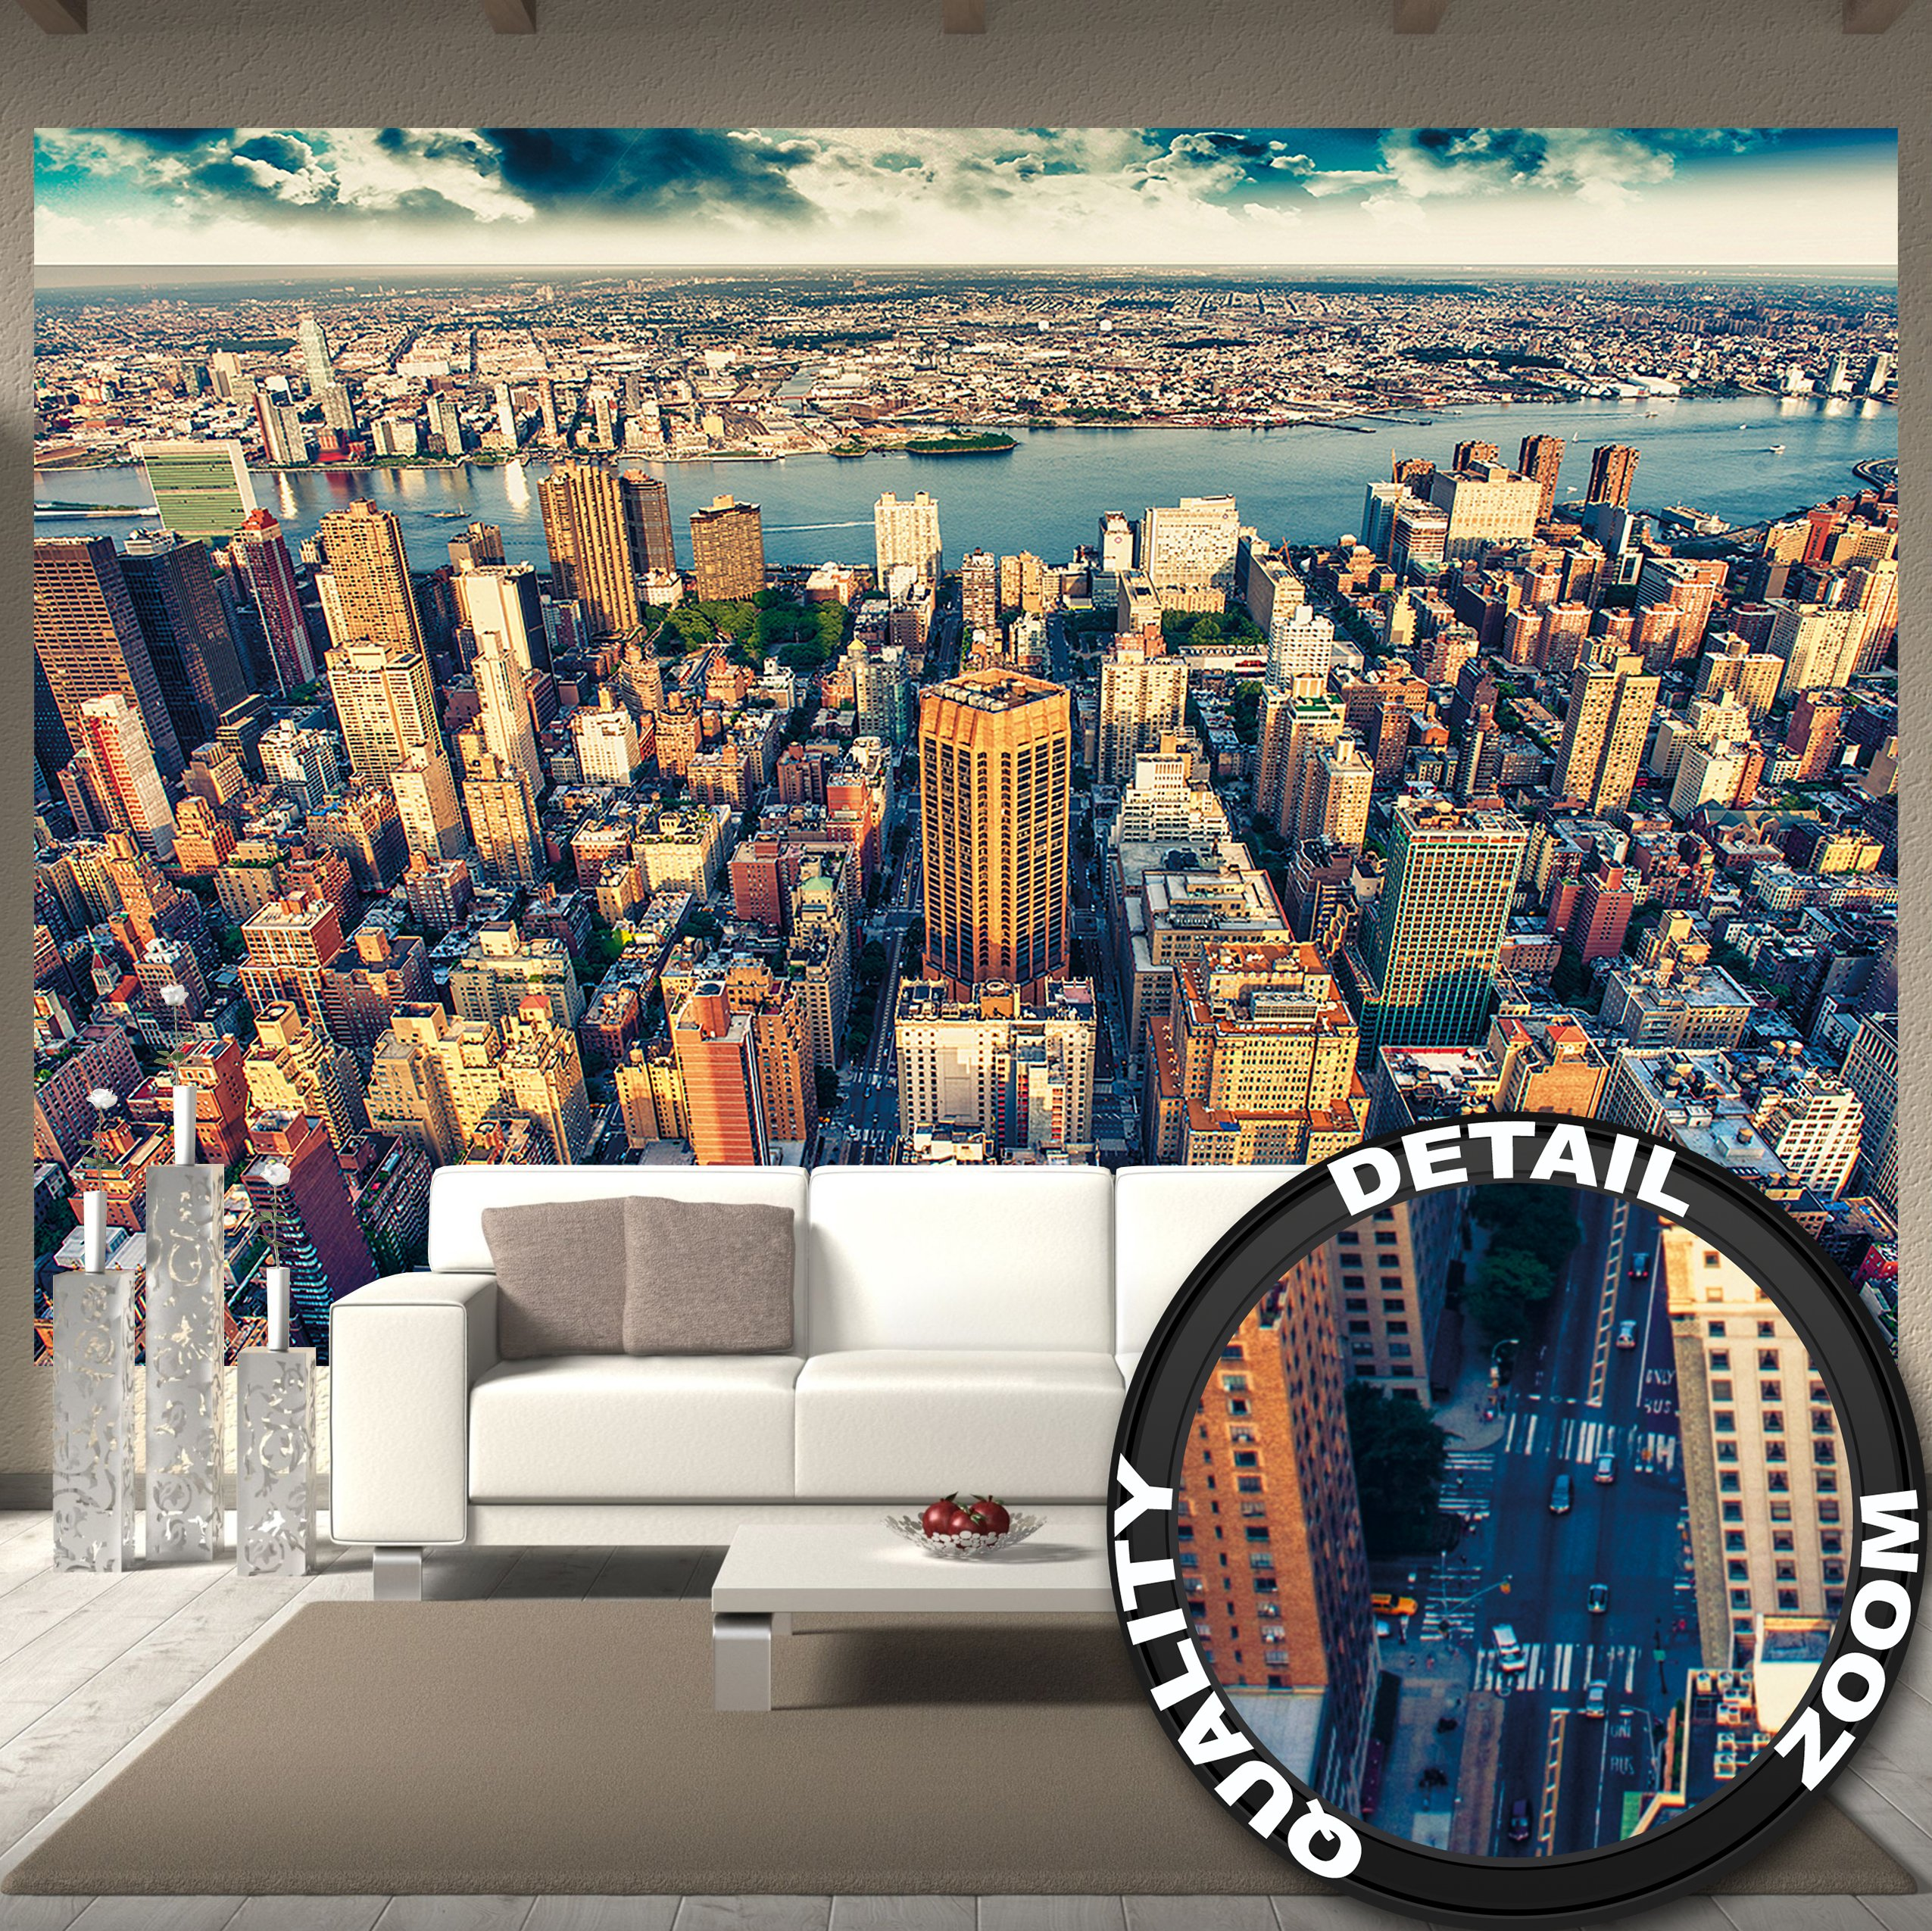 Wallpaper New York City Skyline – wall picture decoration sundown Manhattan America USA décor Big Apple NYC I paperhanging Wallpaper poster wall decor by GREAT ART 132.3x93.7 Inch/336x238 cm by GREAT ART